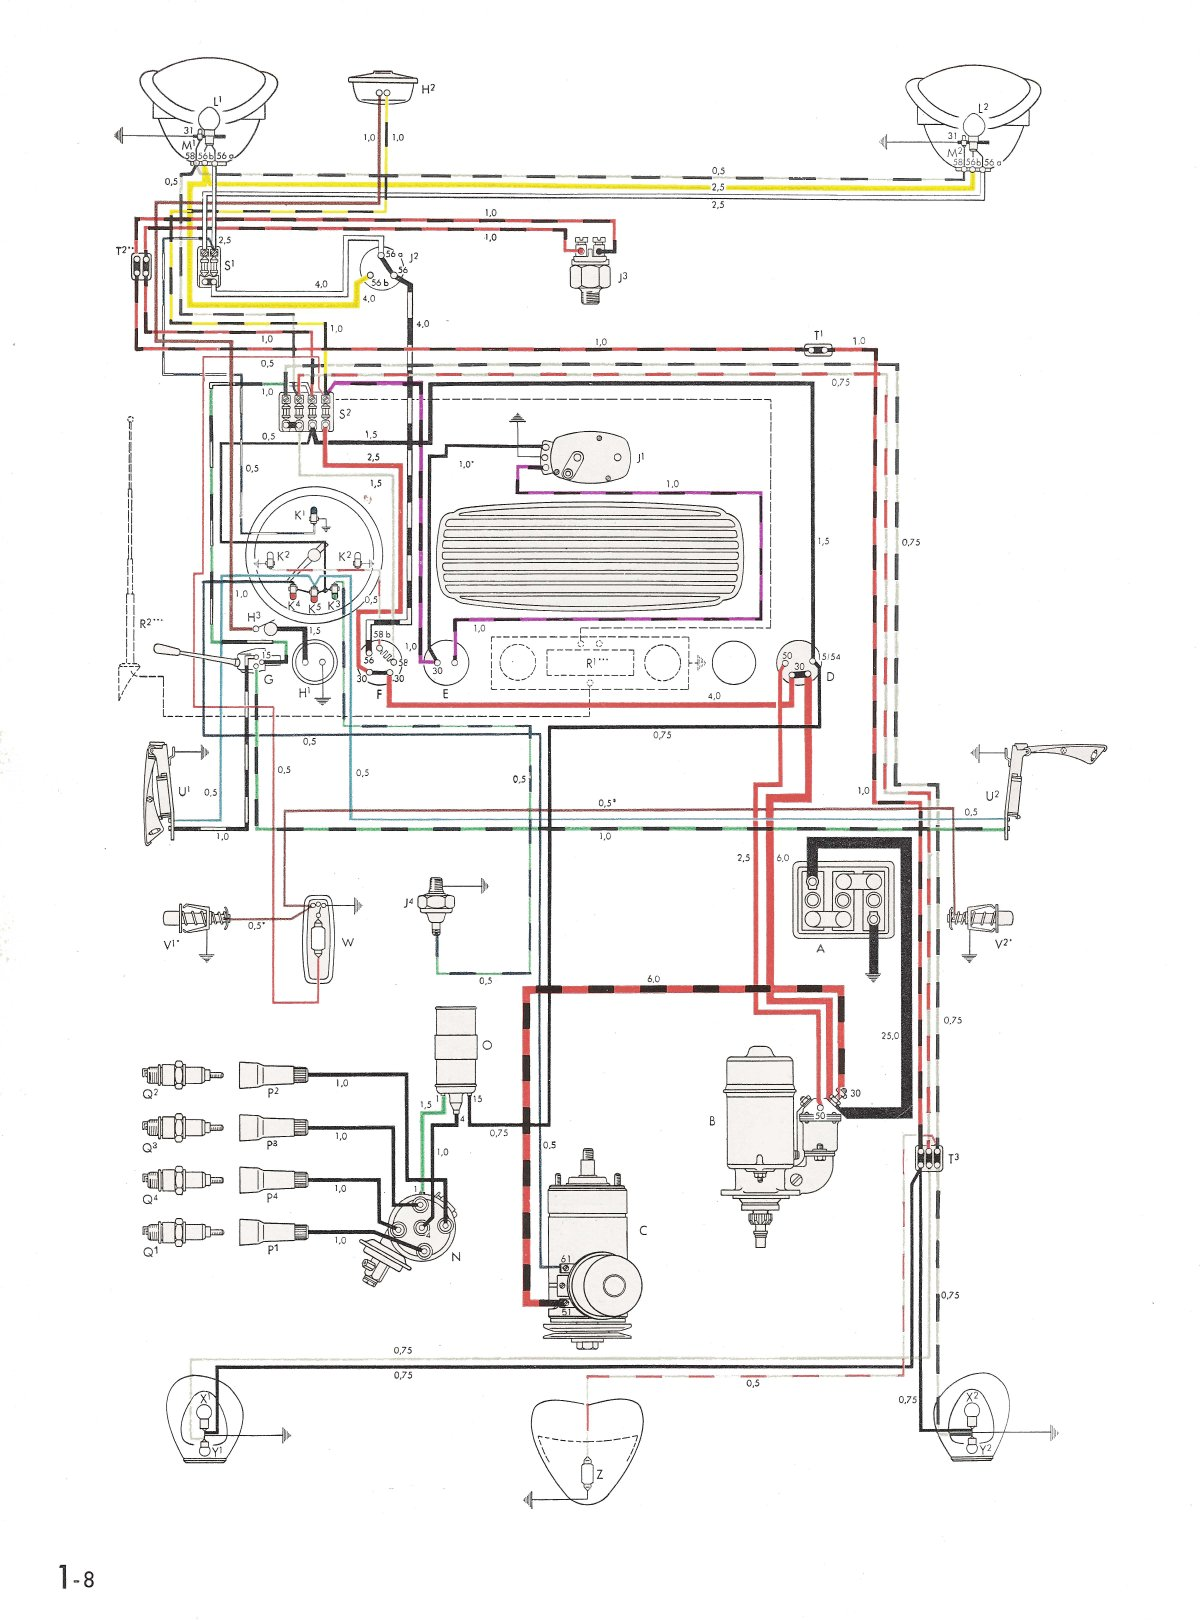 bug54 thesamba com type 1 wiring diagrams 74 vw bus wiring diagram at nearapp.co